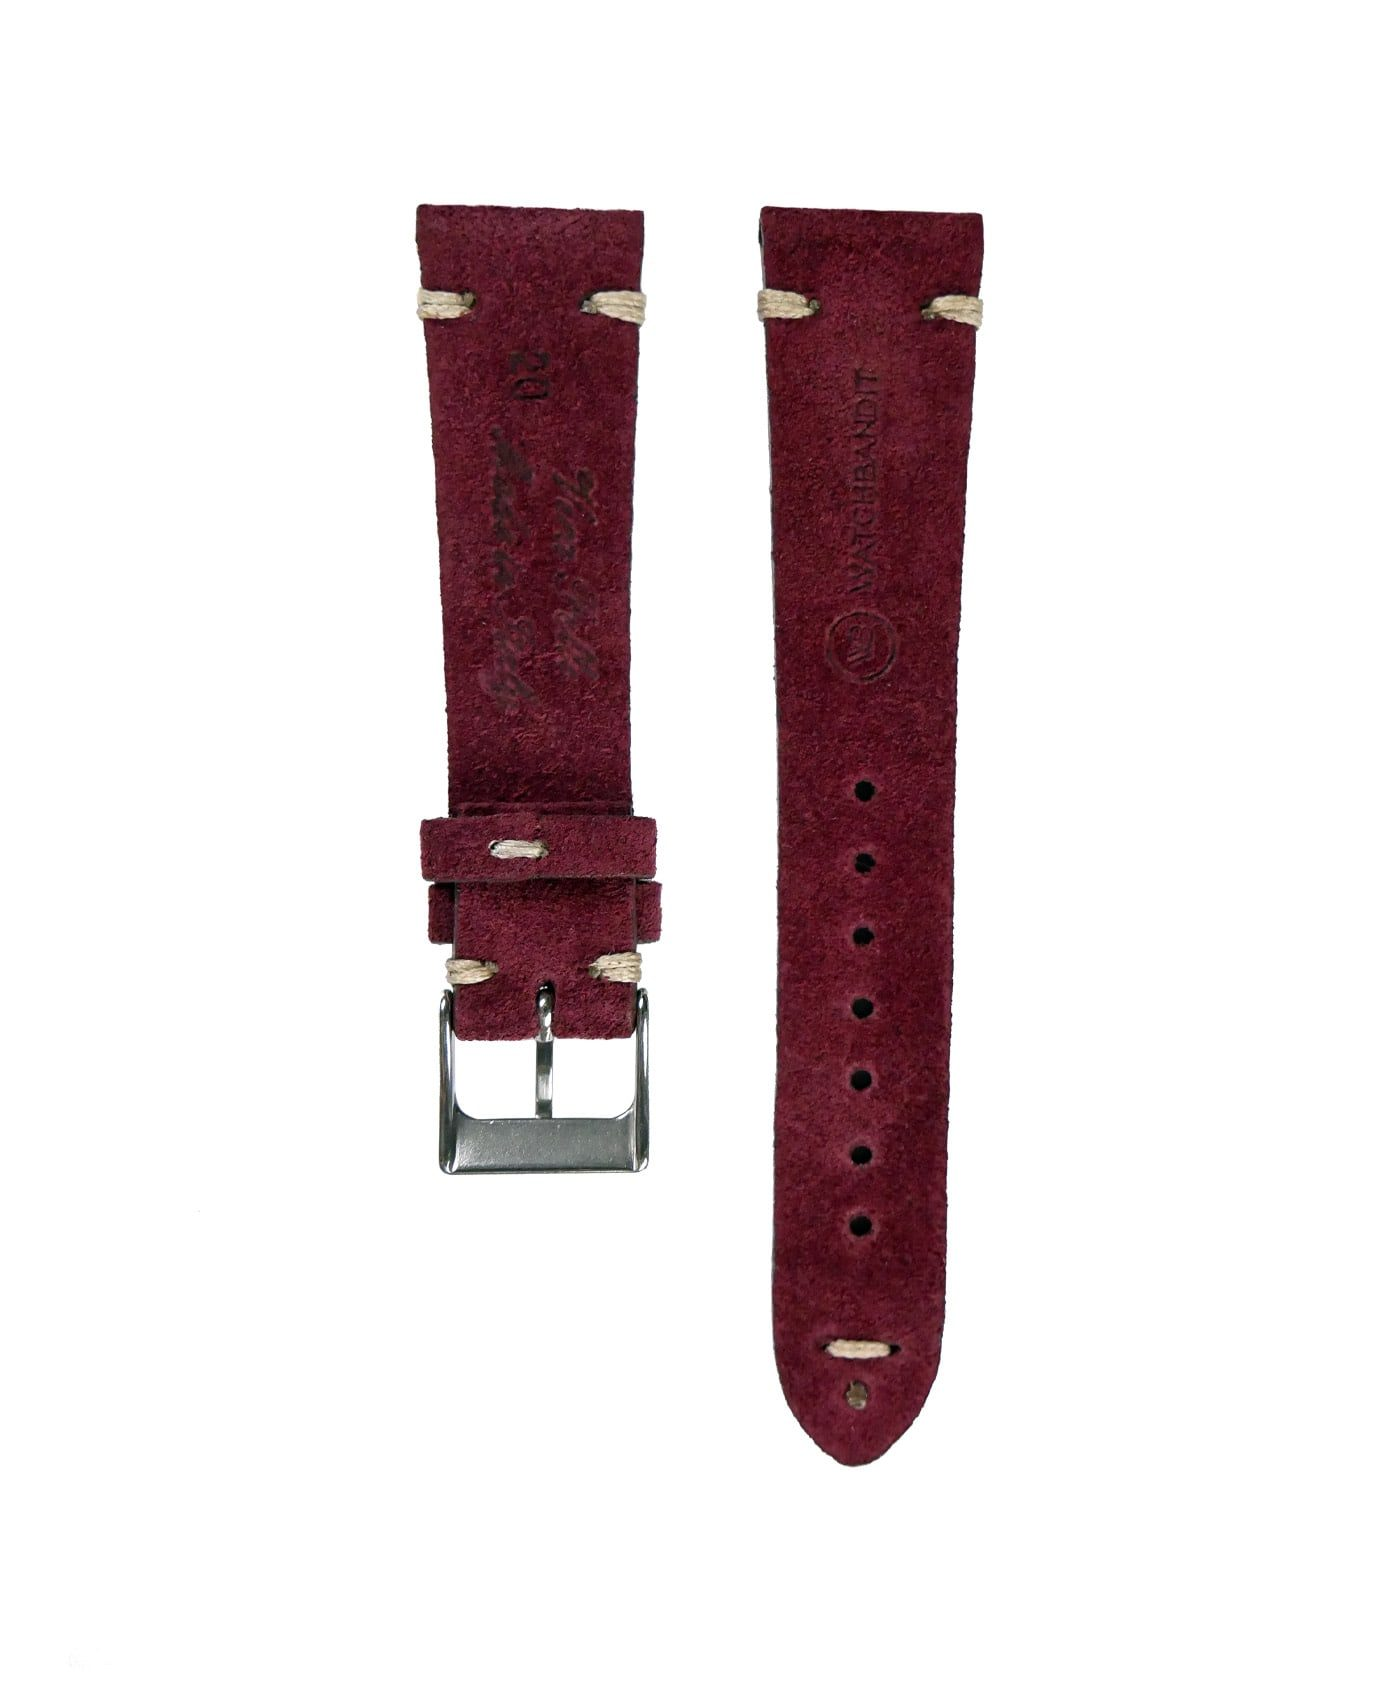 WB original premium suede watch strap burgundy bordeaux red rear